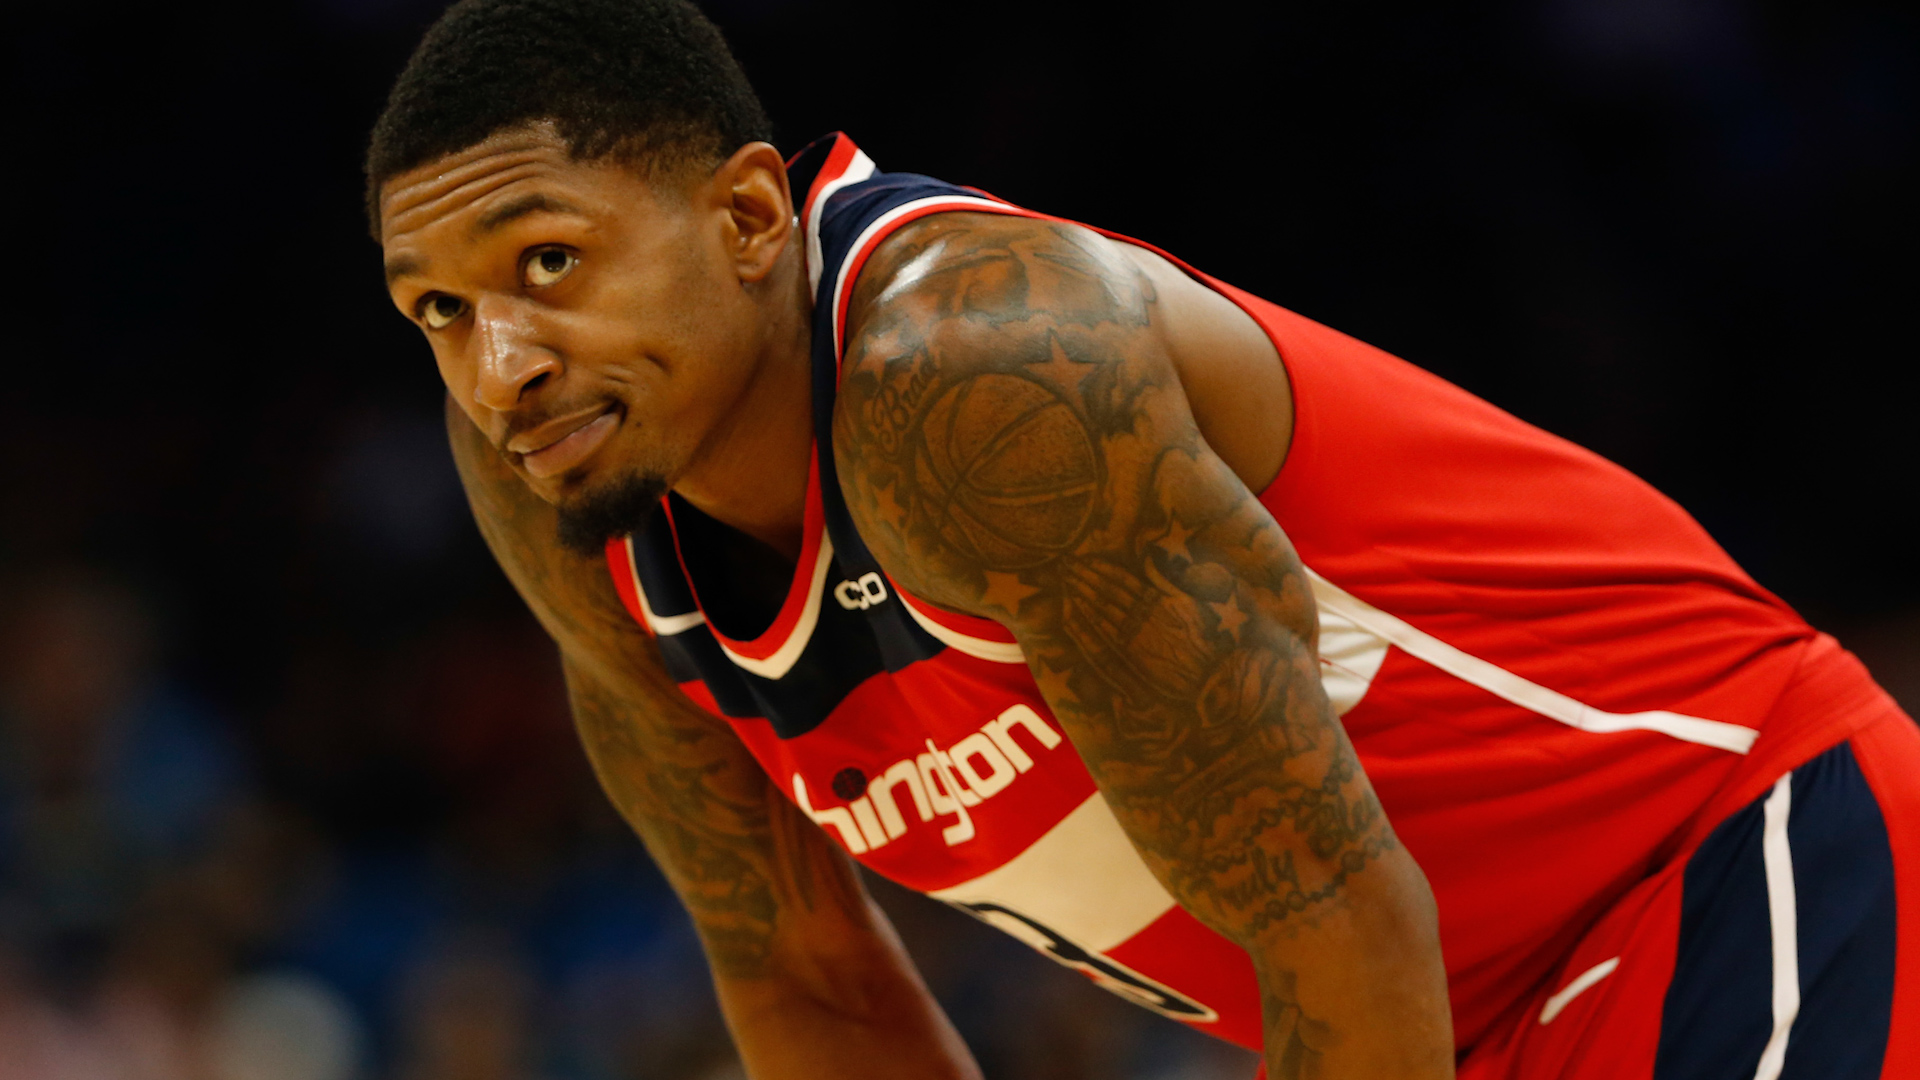 Wizards' guard Bradley Beal is snubbed for All-NBA team, what next?